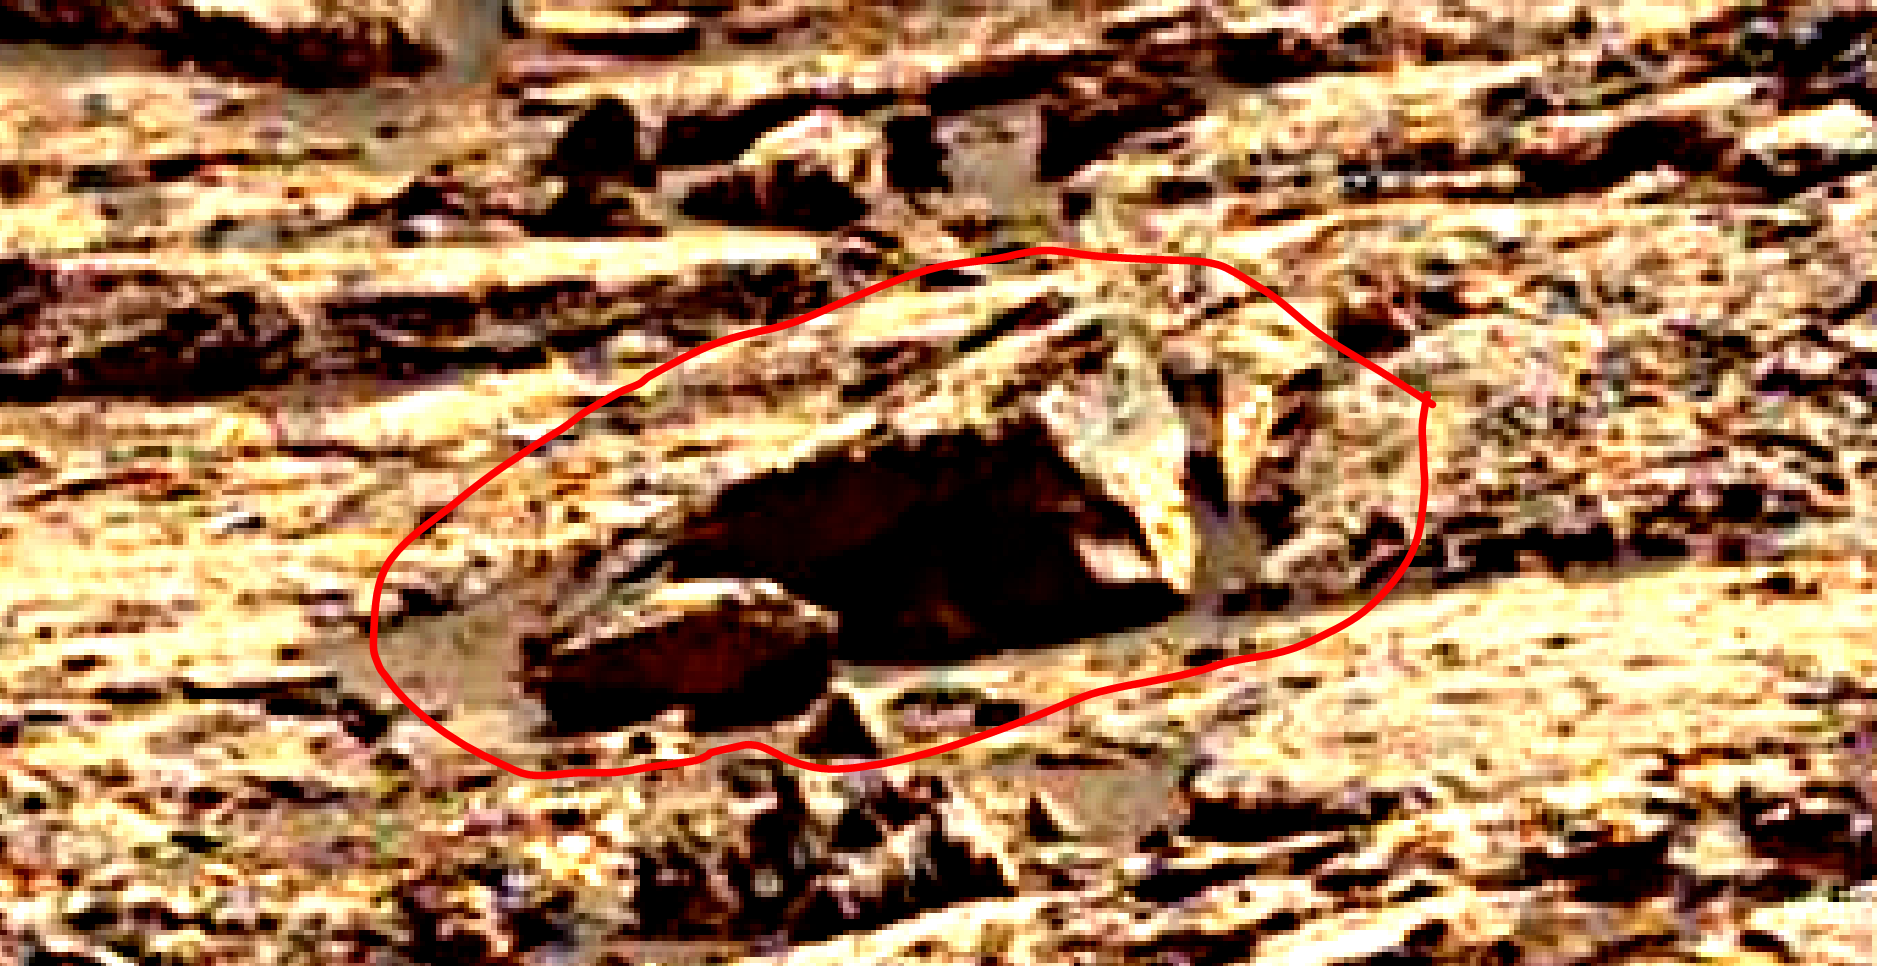 mars-sol-1489-anomaly-artifacts-9-was-life-on-mars